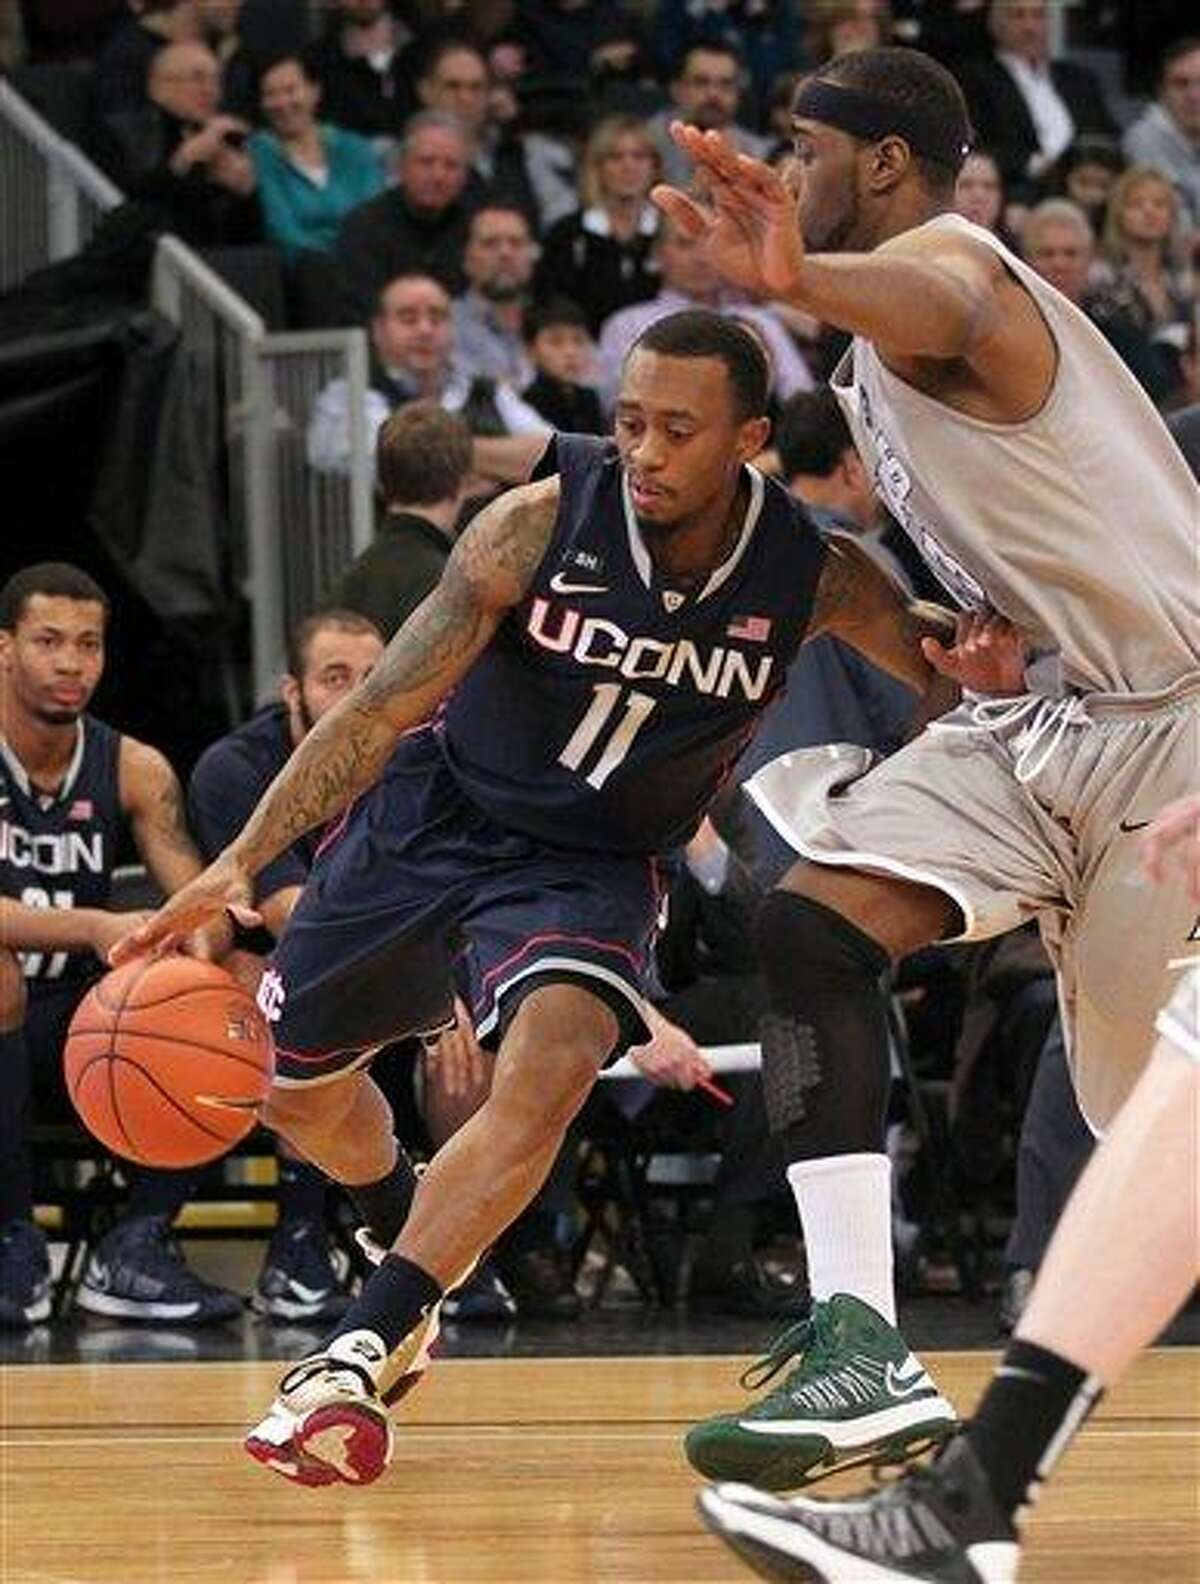 Connecticut guard Ryan Boatright (11) drives to the basket against the defense of Providence forward LaDontae Henton, right, during the second half of an NCAA college basketball game, Thursday, Jan. 31, 2013, in Providence, R.I. (AP Photo/Stew Milne)